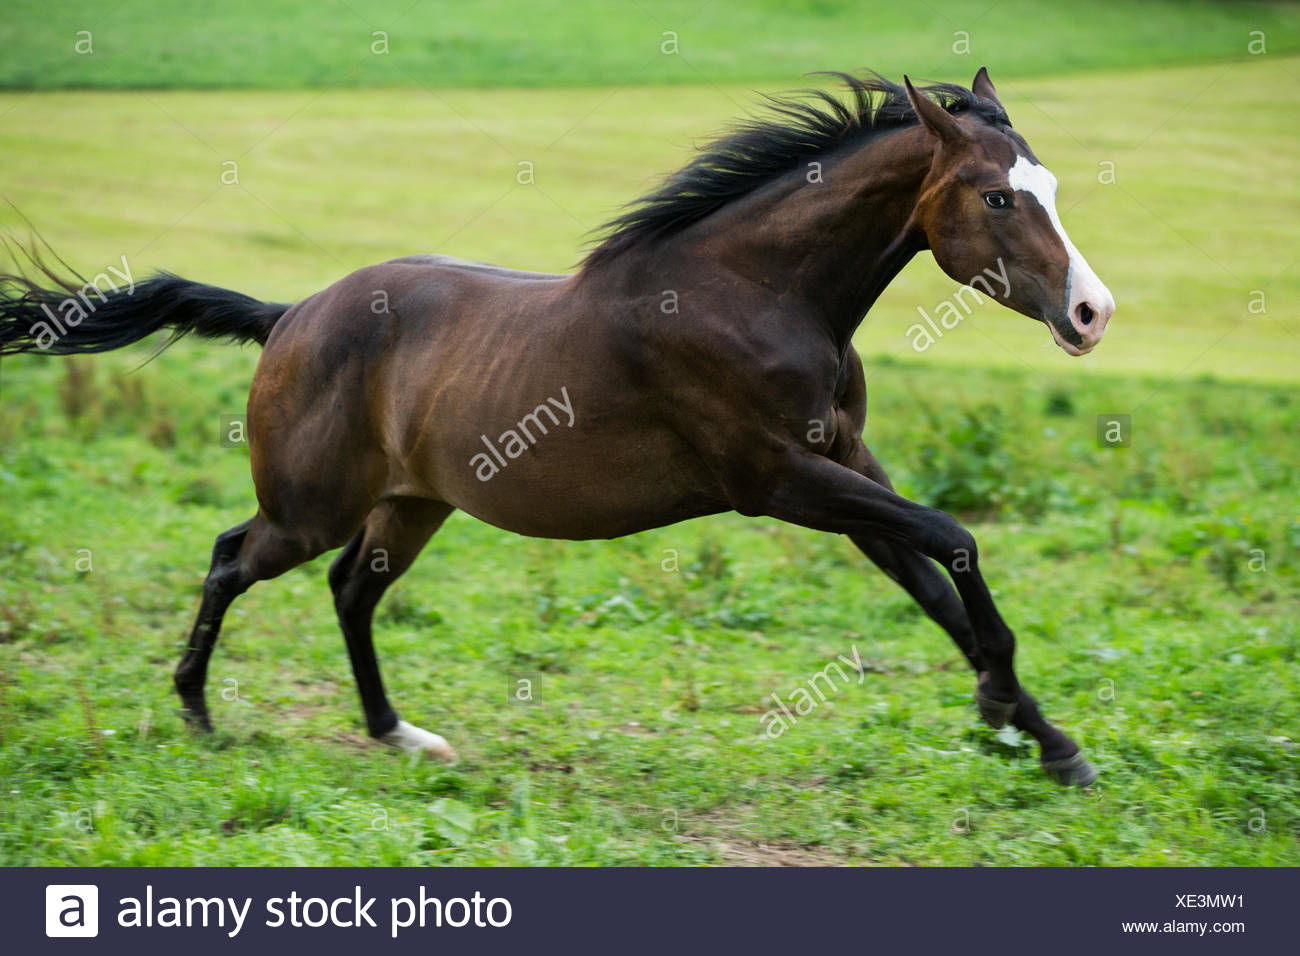 Paint Horse, bay horse galloping in a meadow - Stock Image